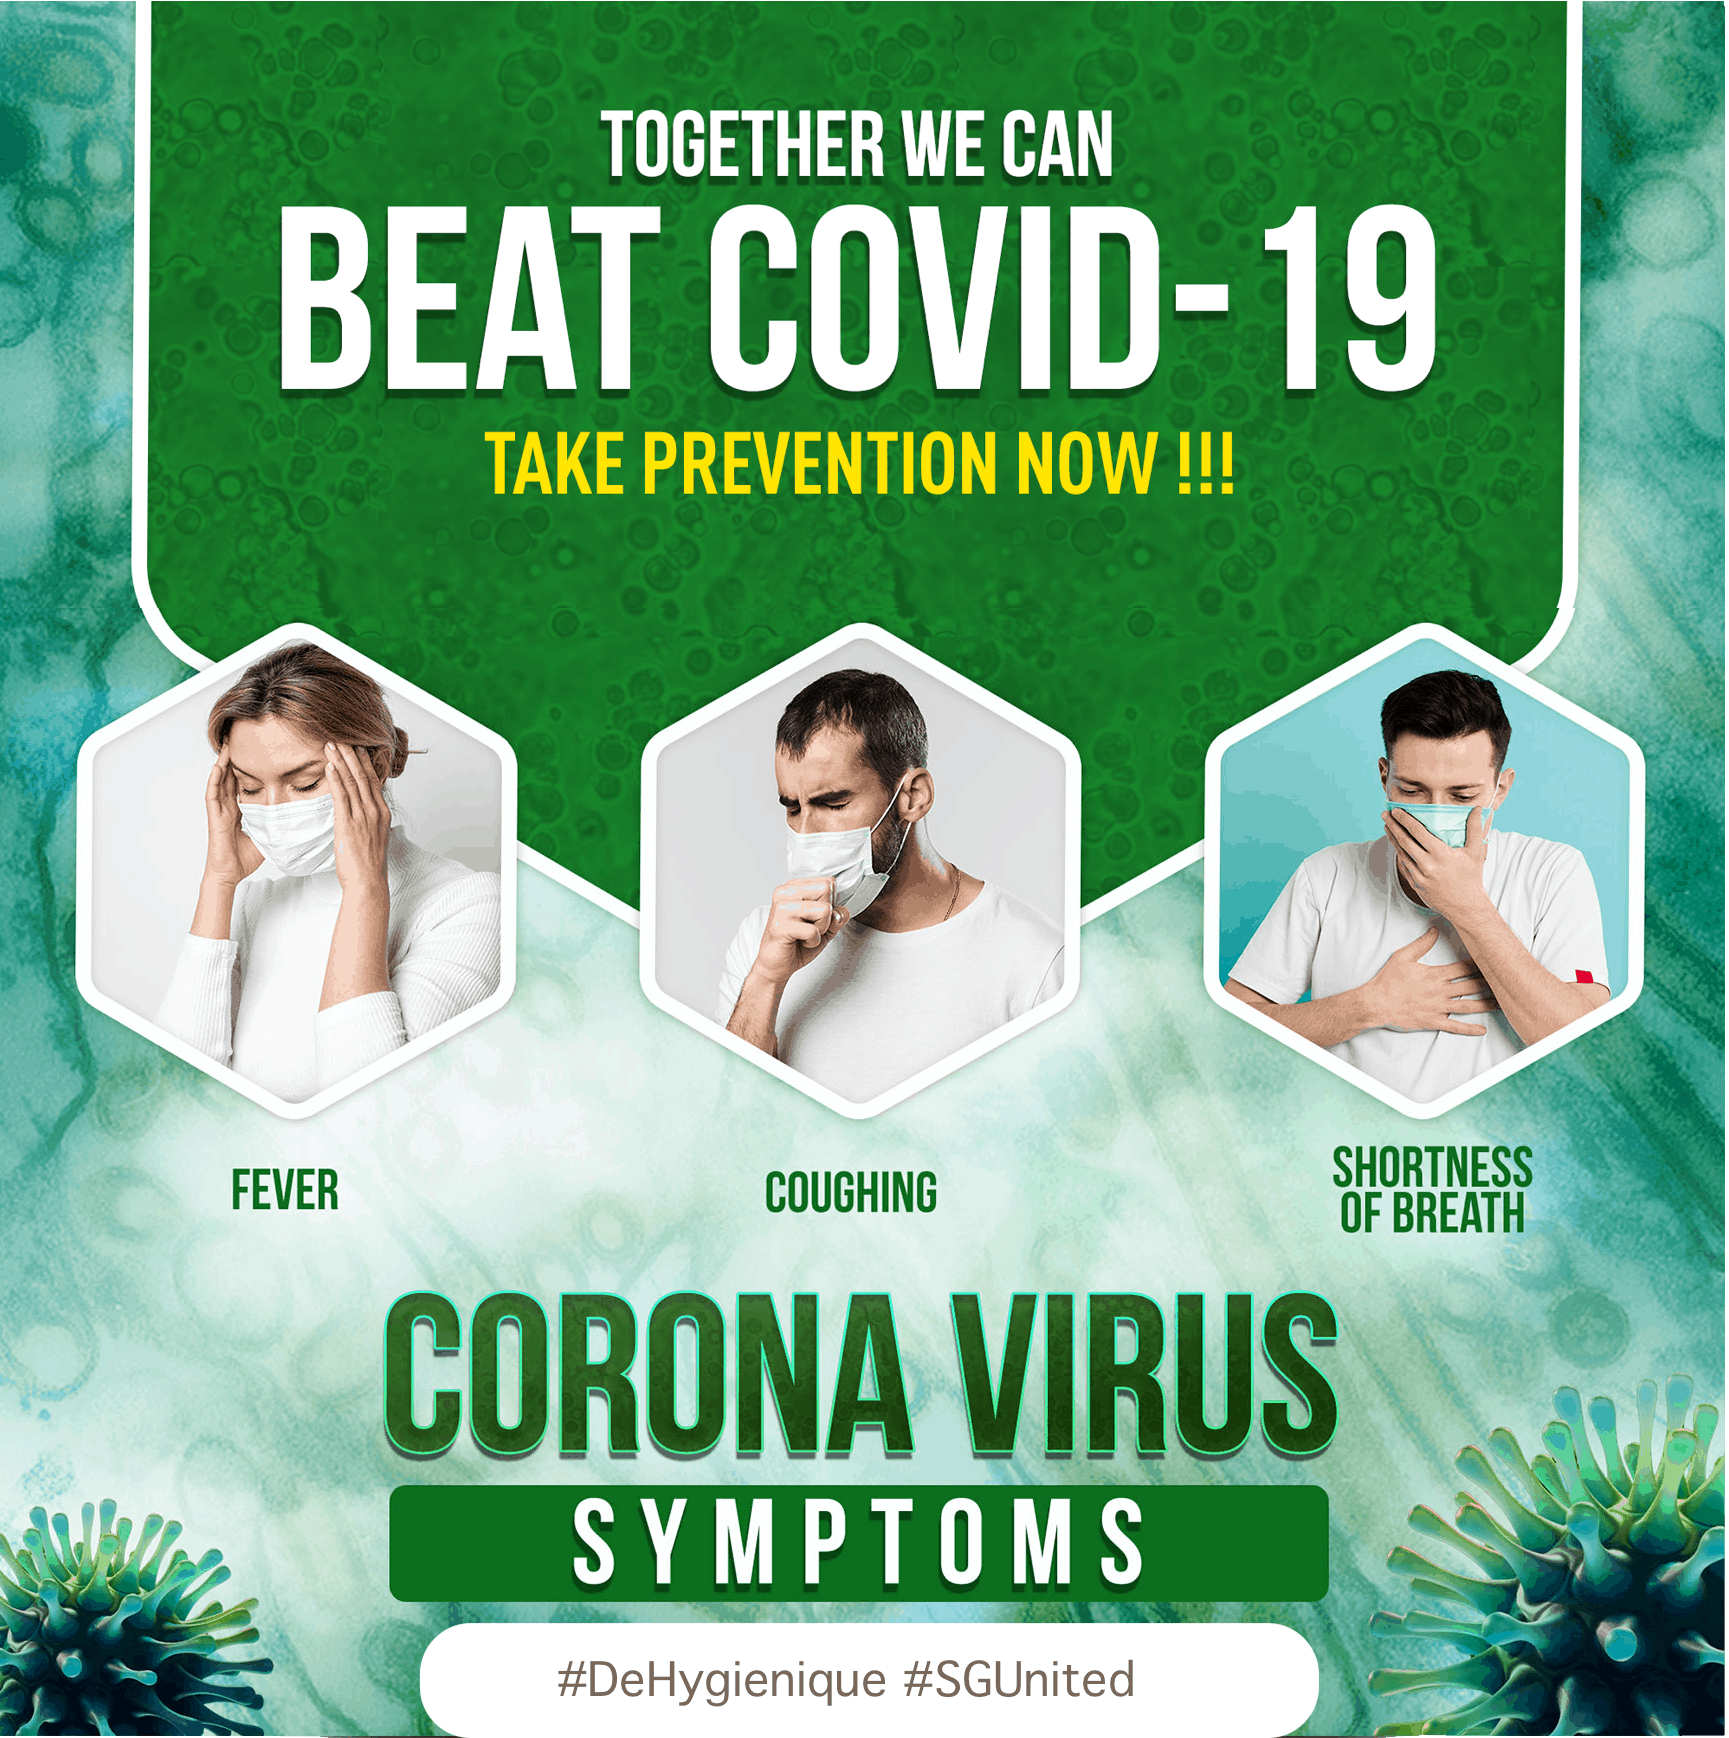 Together We Can Beat COVID-19